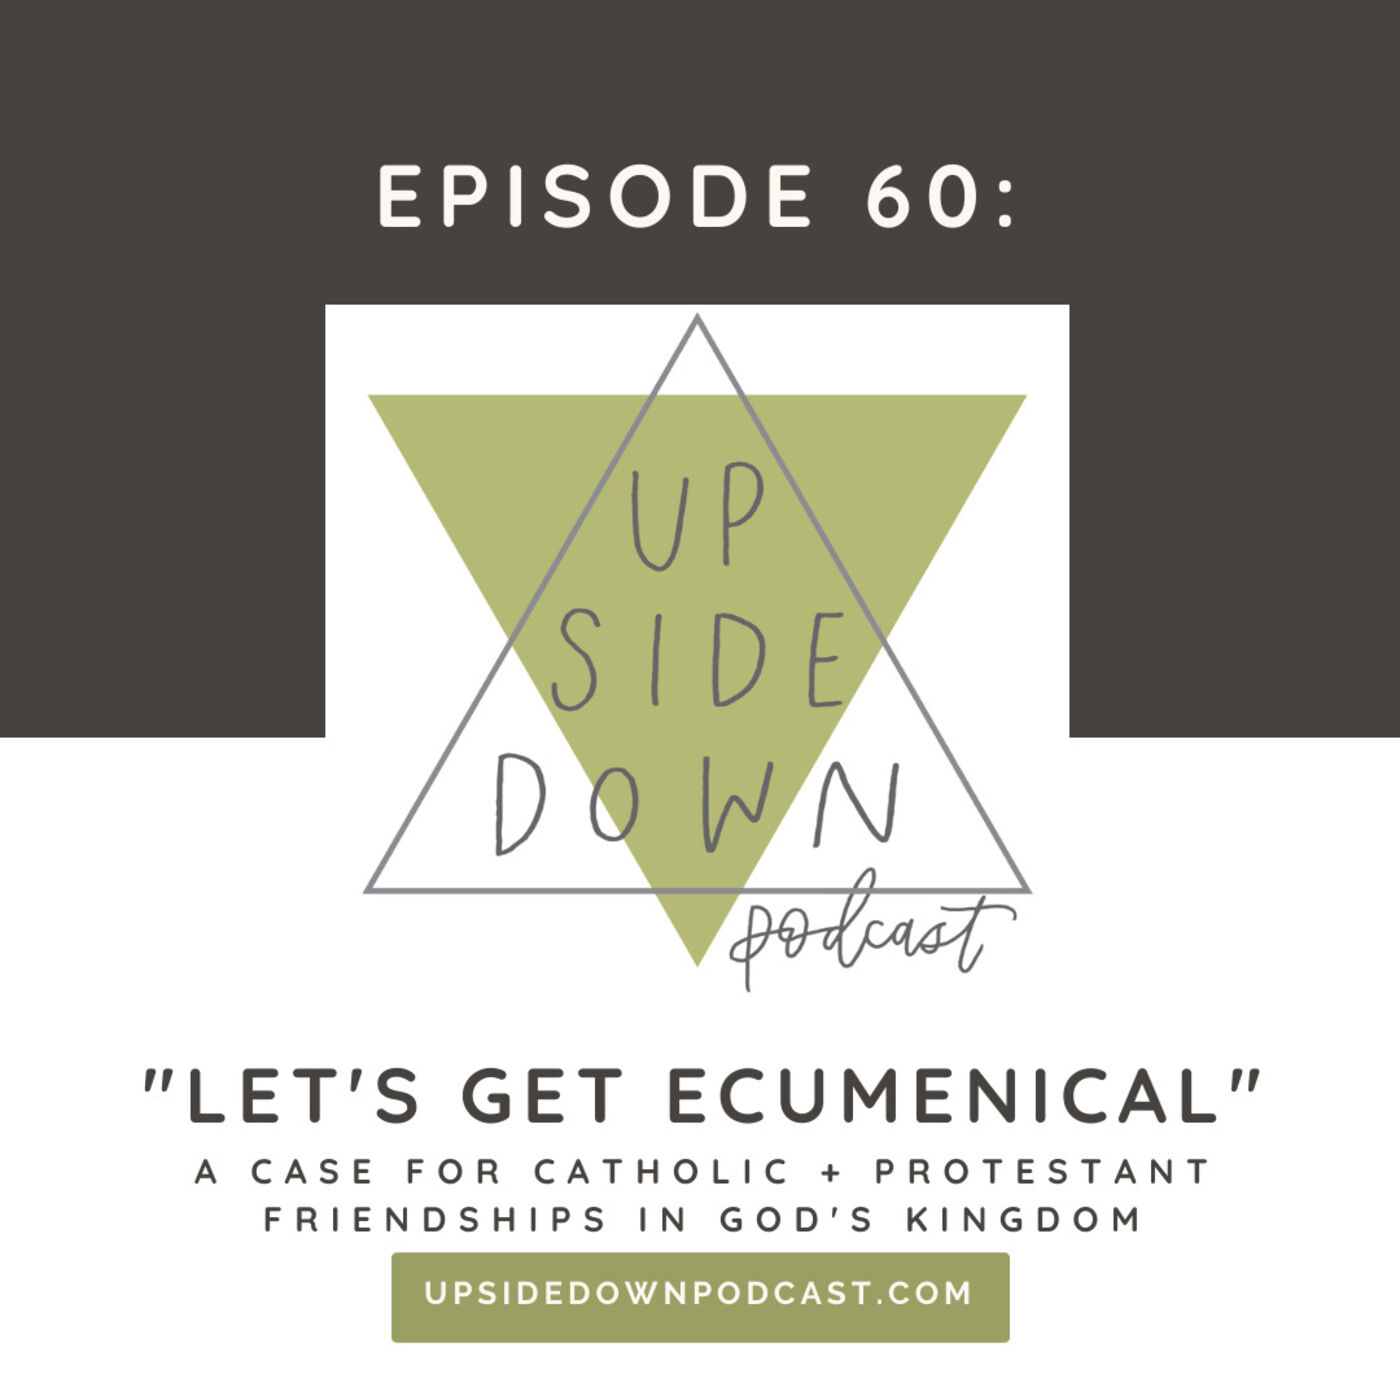 Episode 60 - Let's Get Ecumenical! Catholic & Protestant Thought in God's Kingdom (New Audio!)